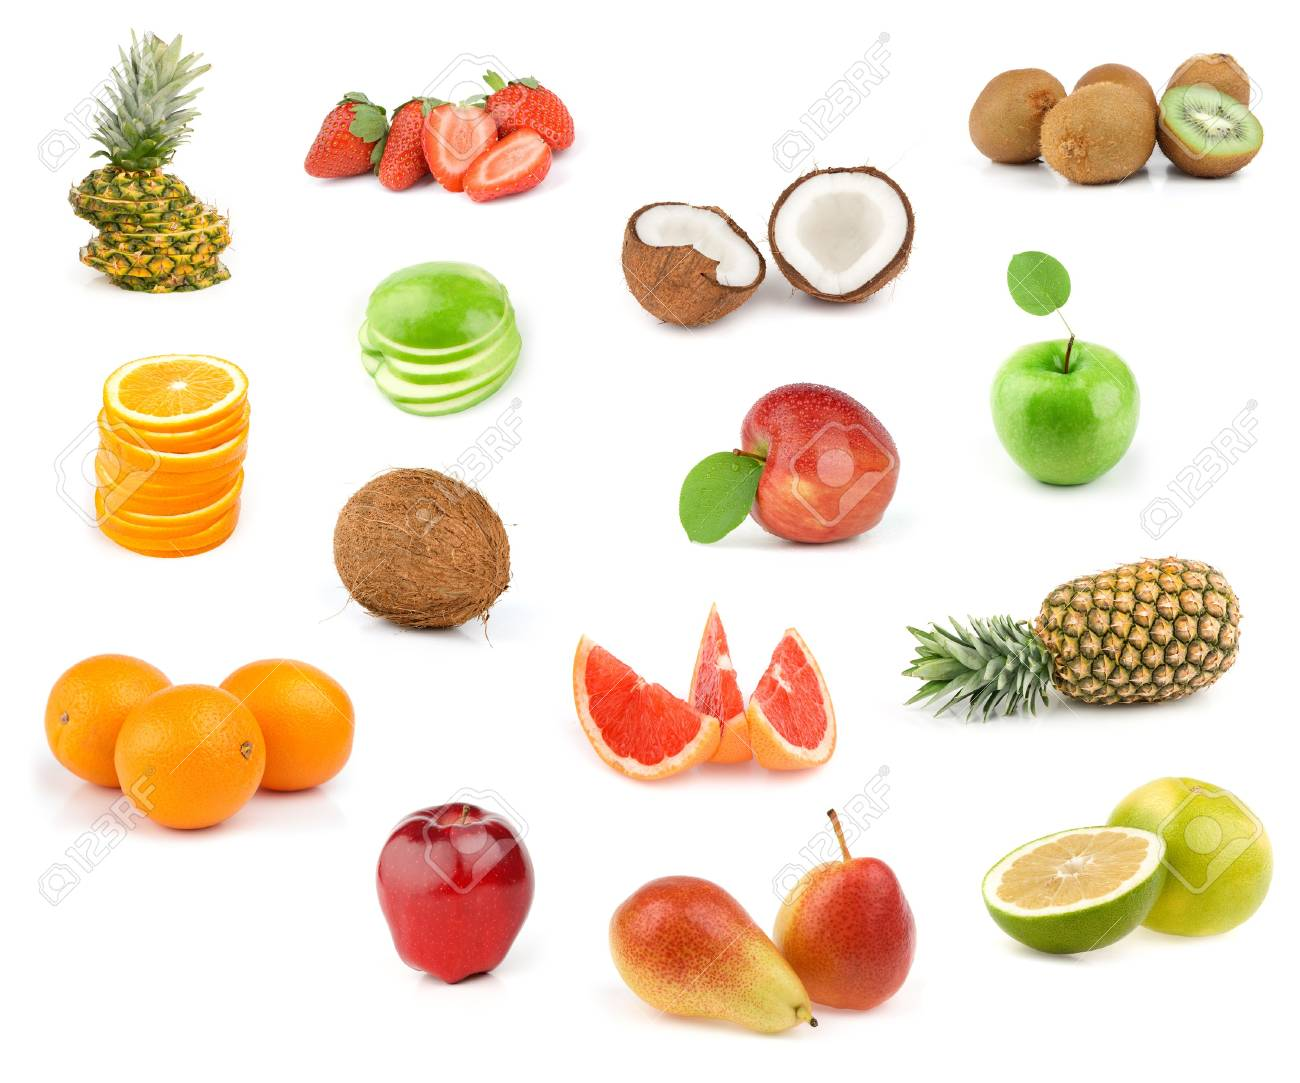 fruits collection isolated on white background Stock Photo - 7163297